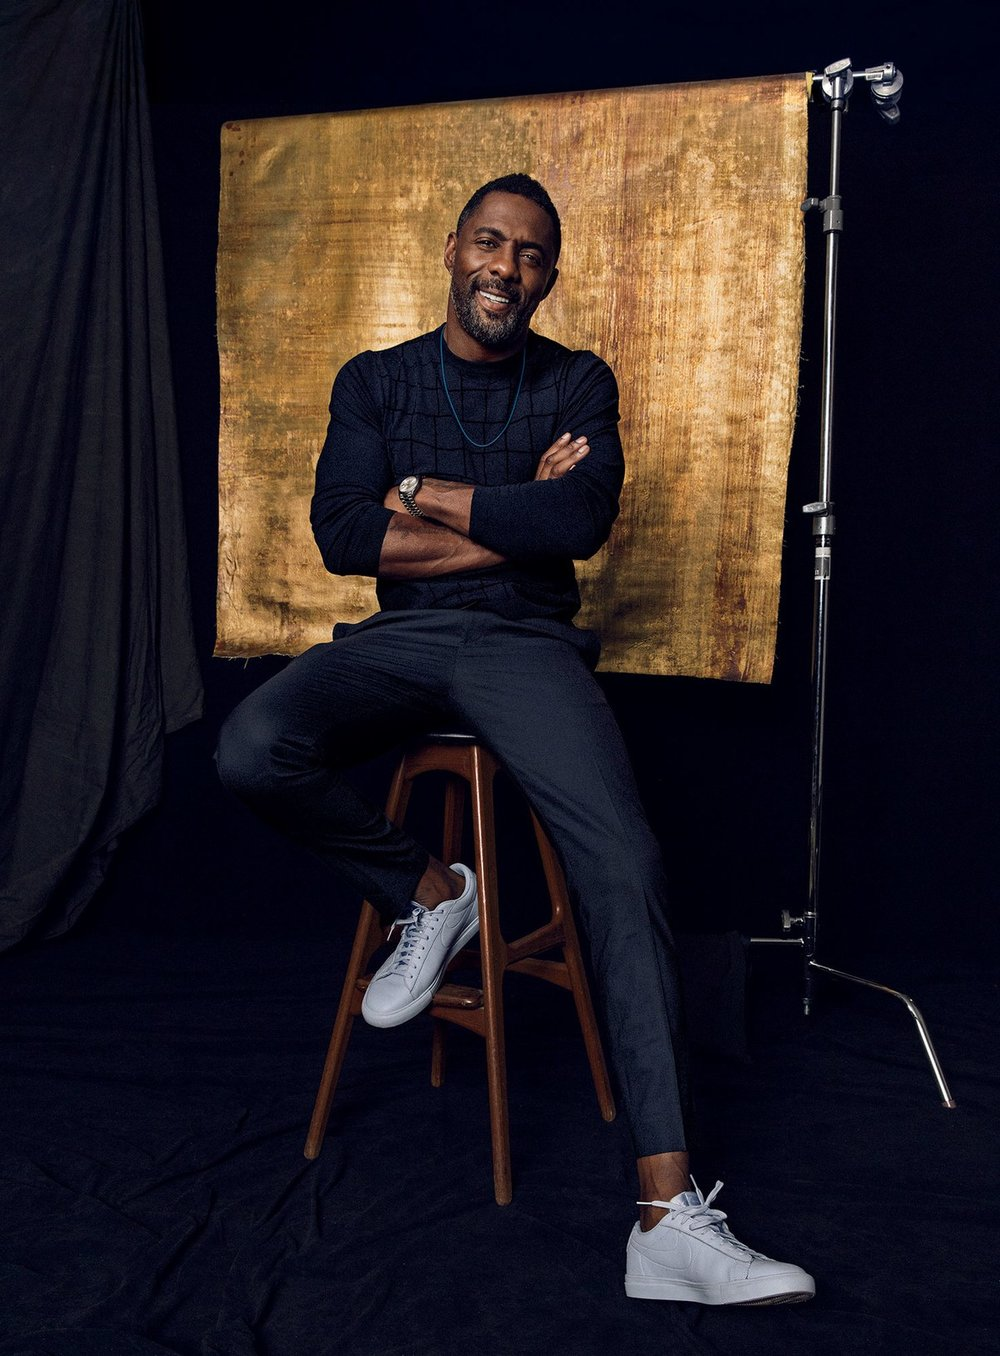 Idris-Elba-Interview.jpg